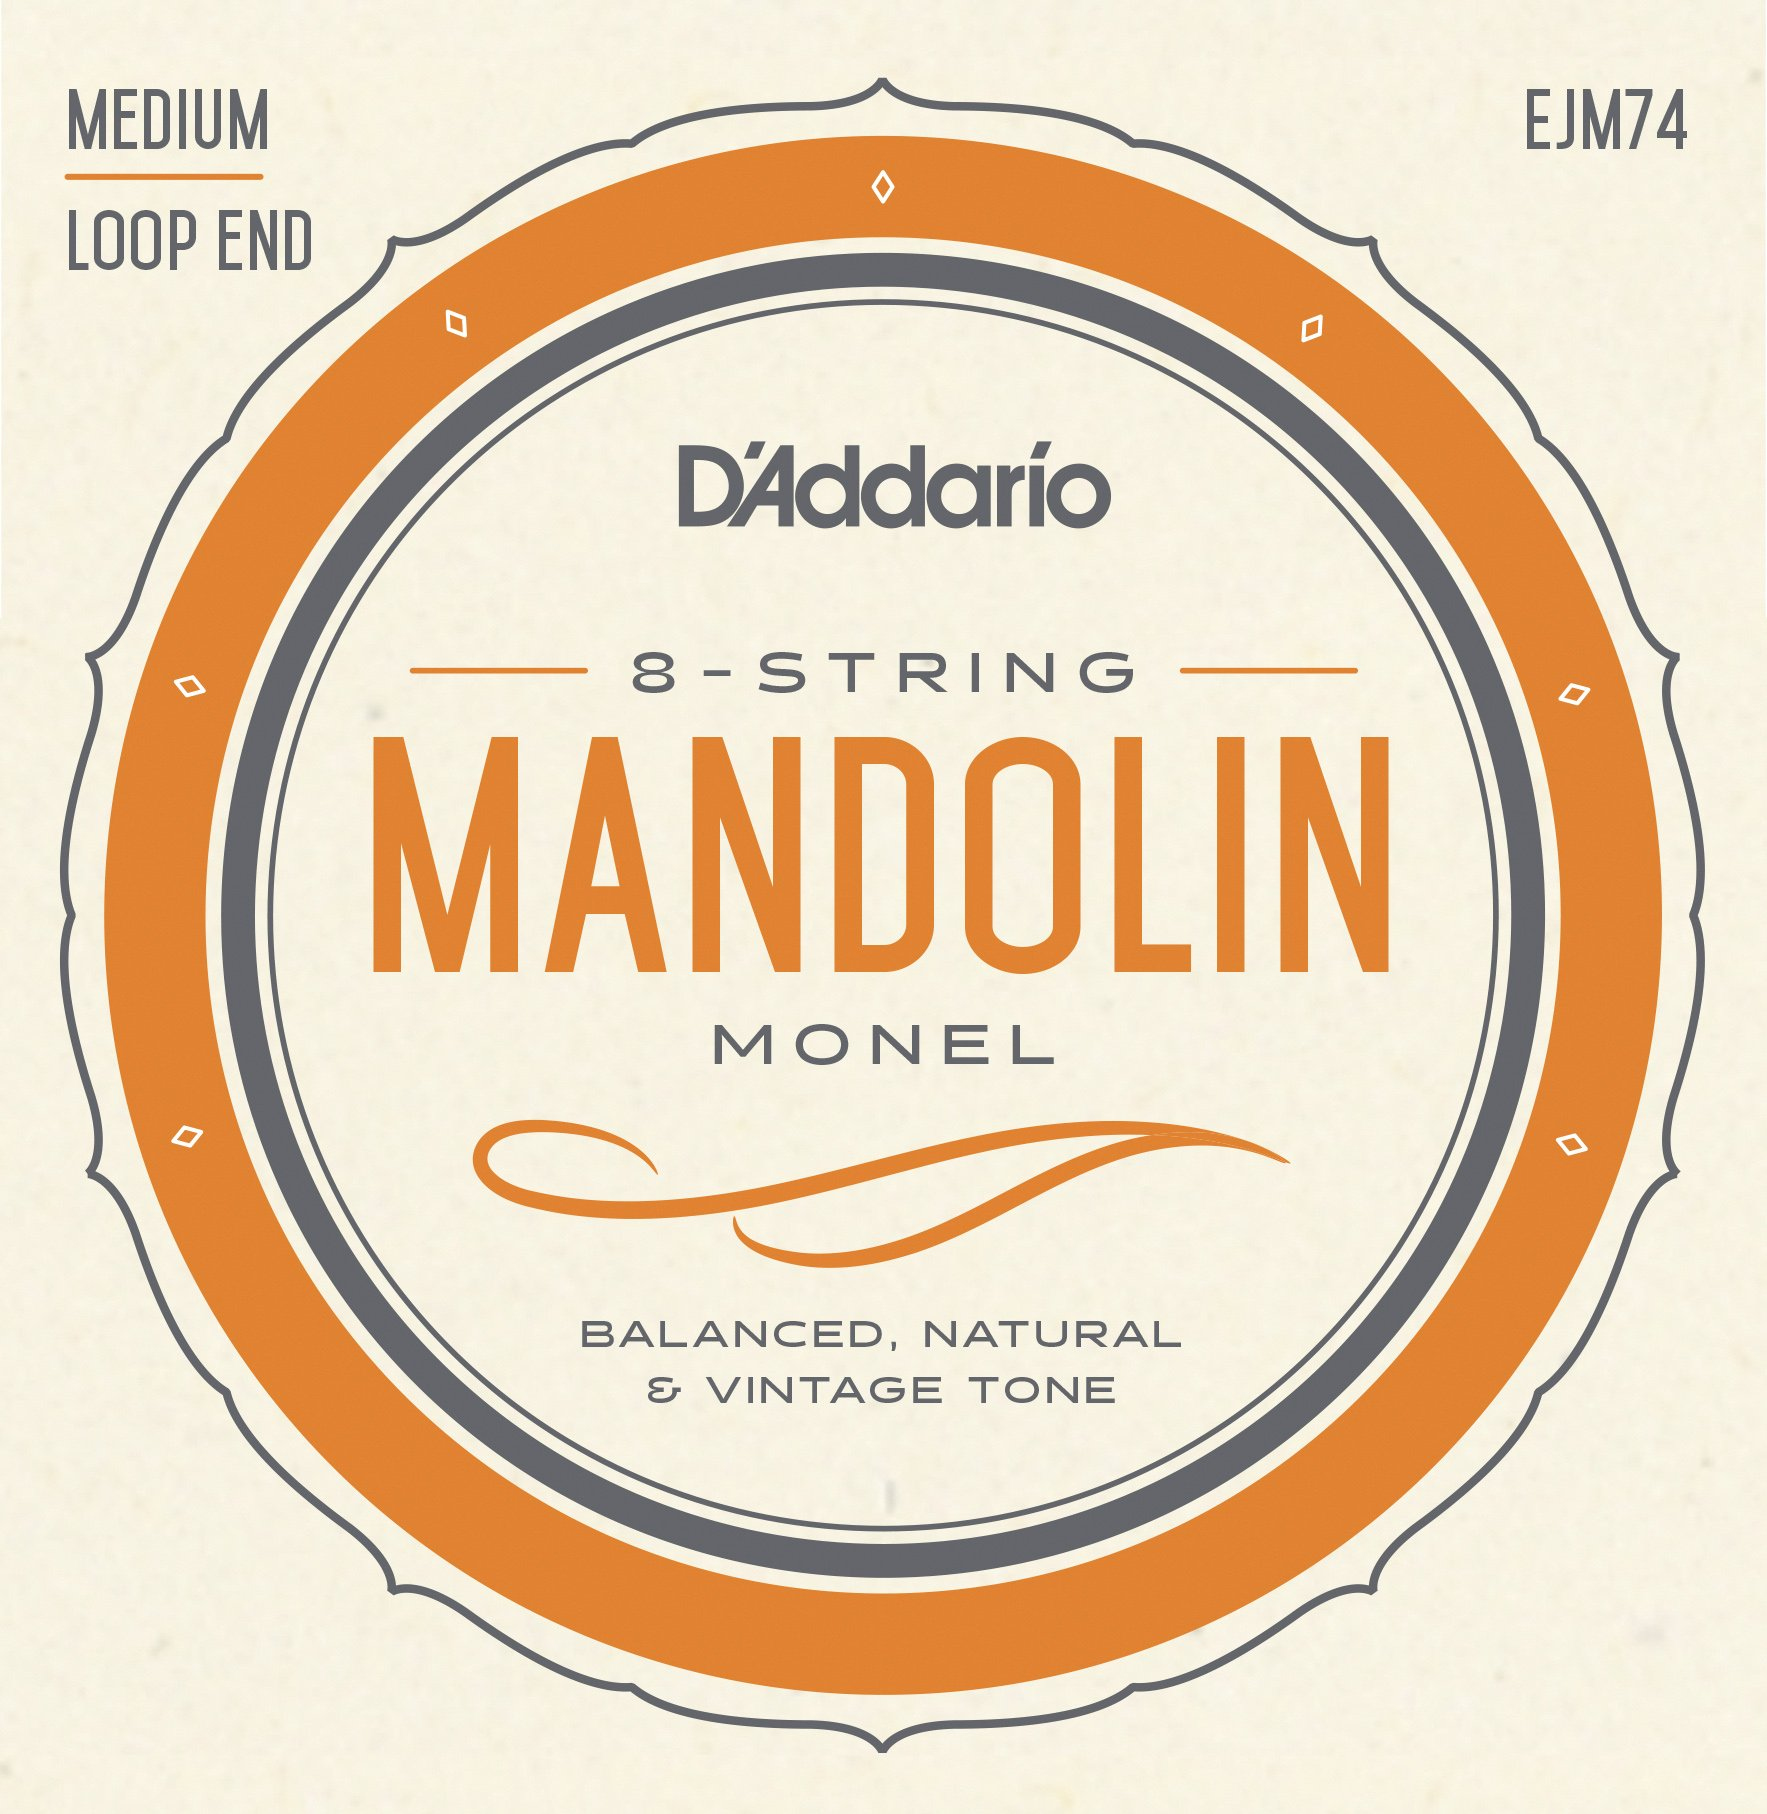 D'Addario Mandolin Monel Set, Medium, 11-40 (EJM74)